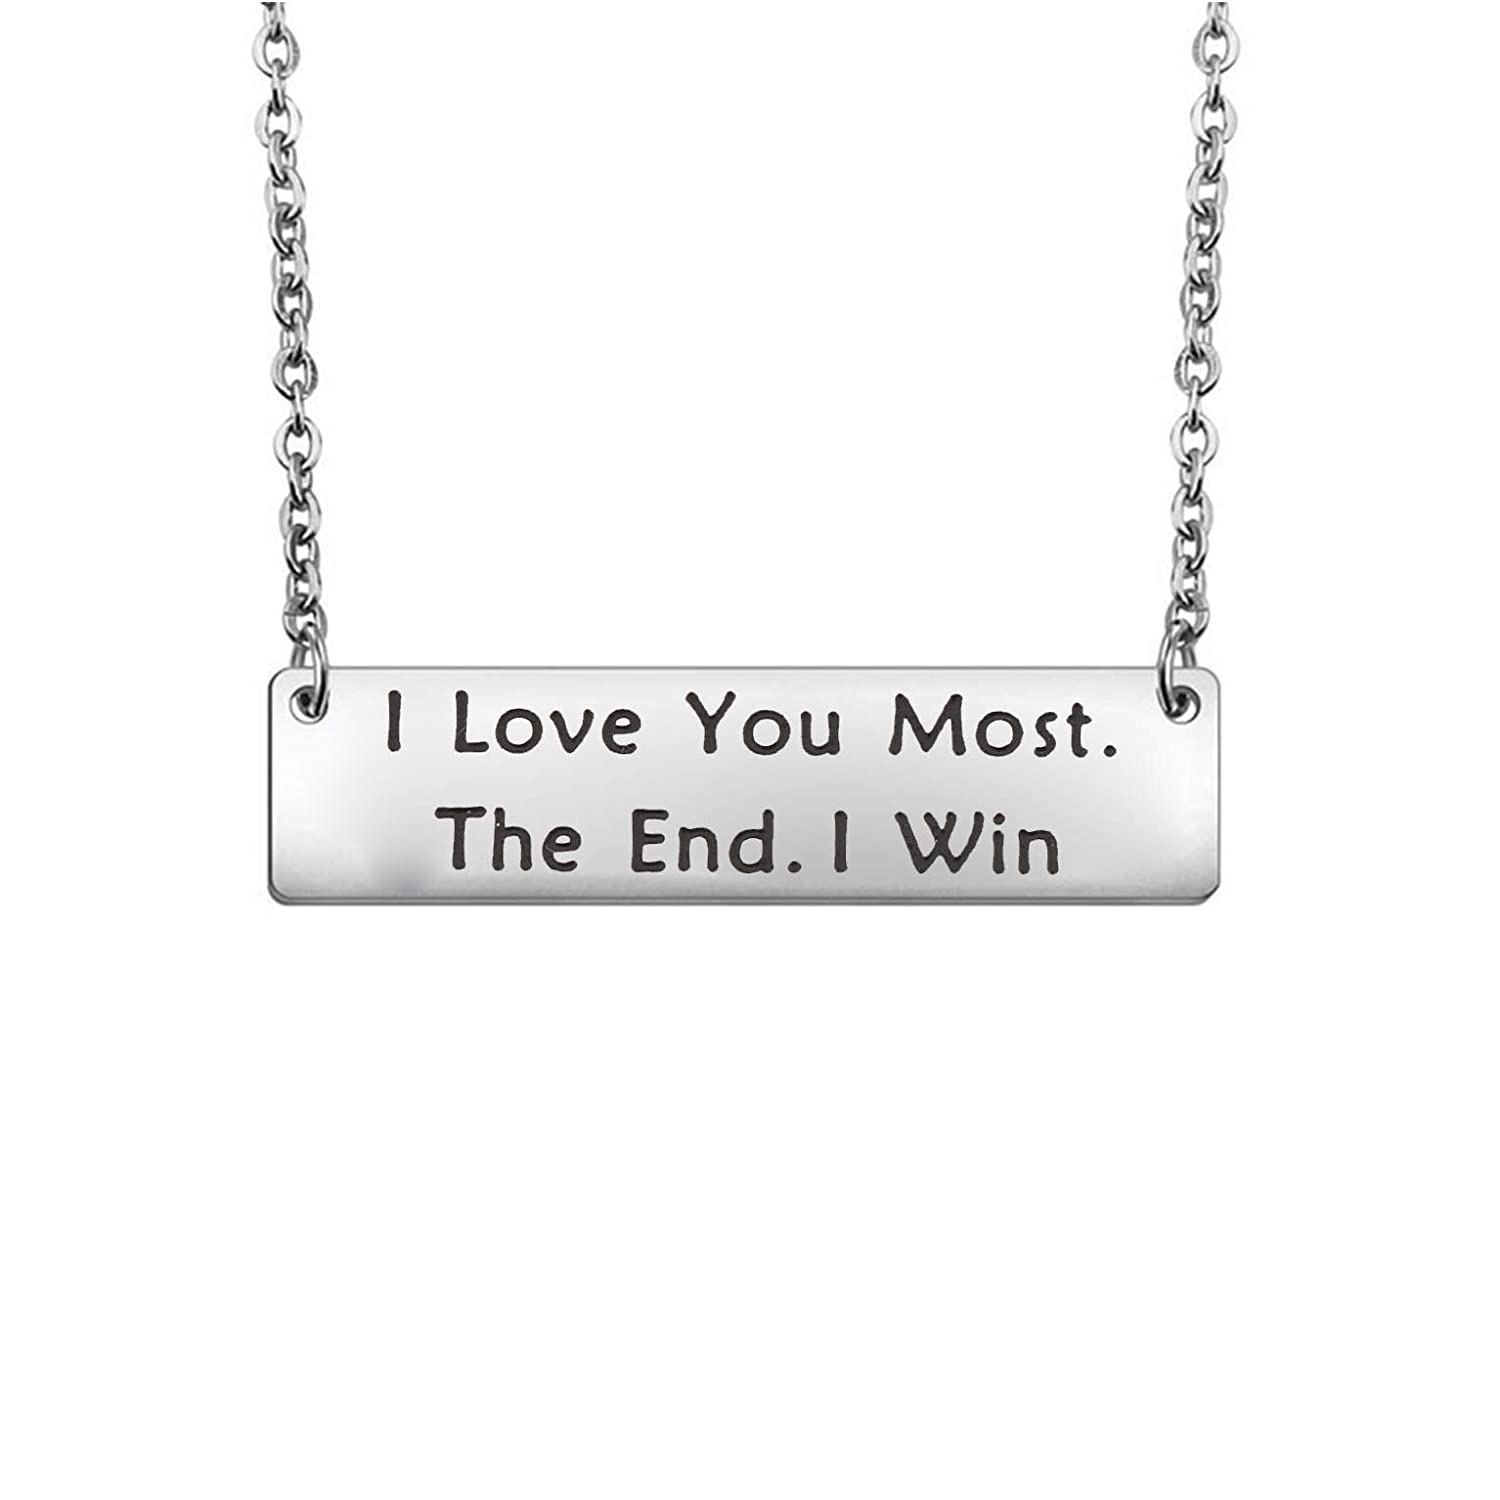 QIIER I Love You Most The End I Win Bracelet Expandable Wire Bangle with Infinity Love Heart Charm Valentines Day Girlfriend